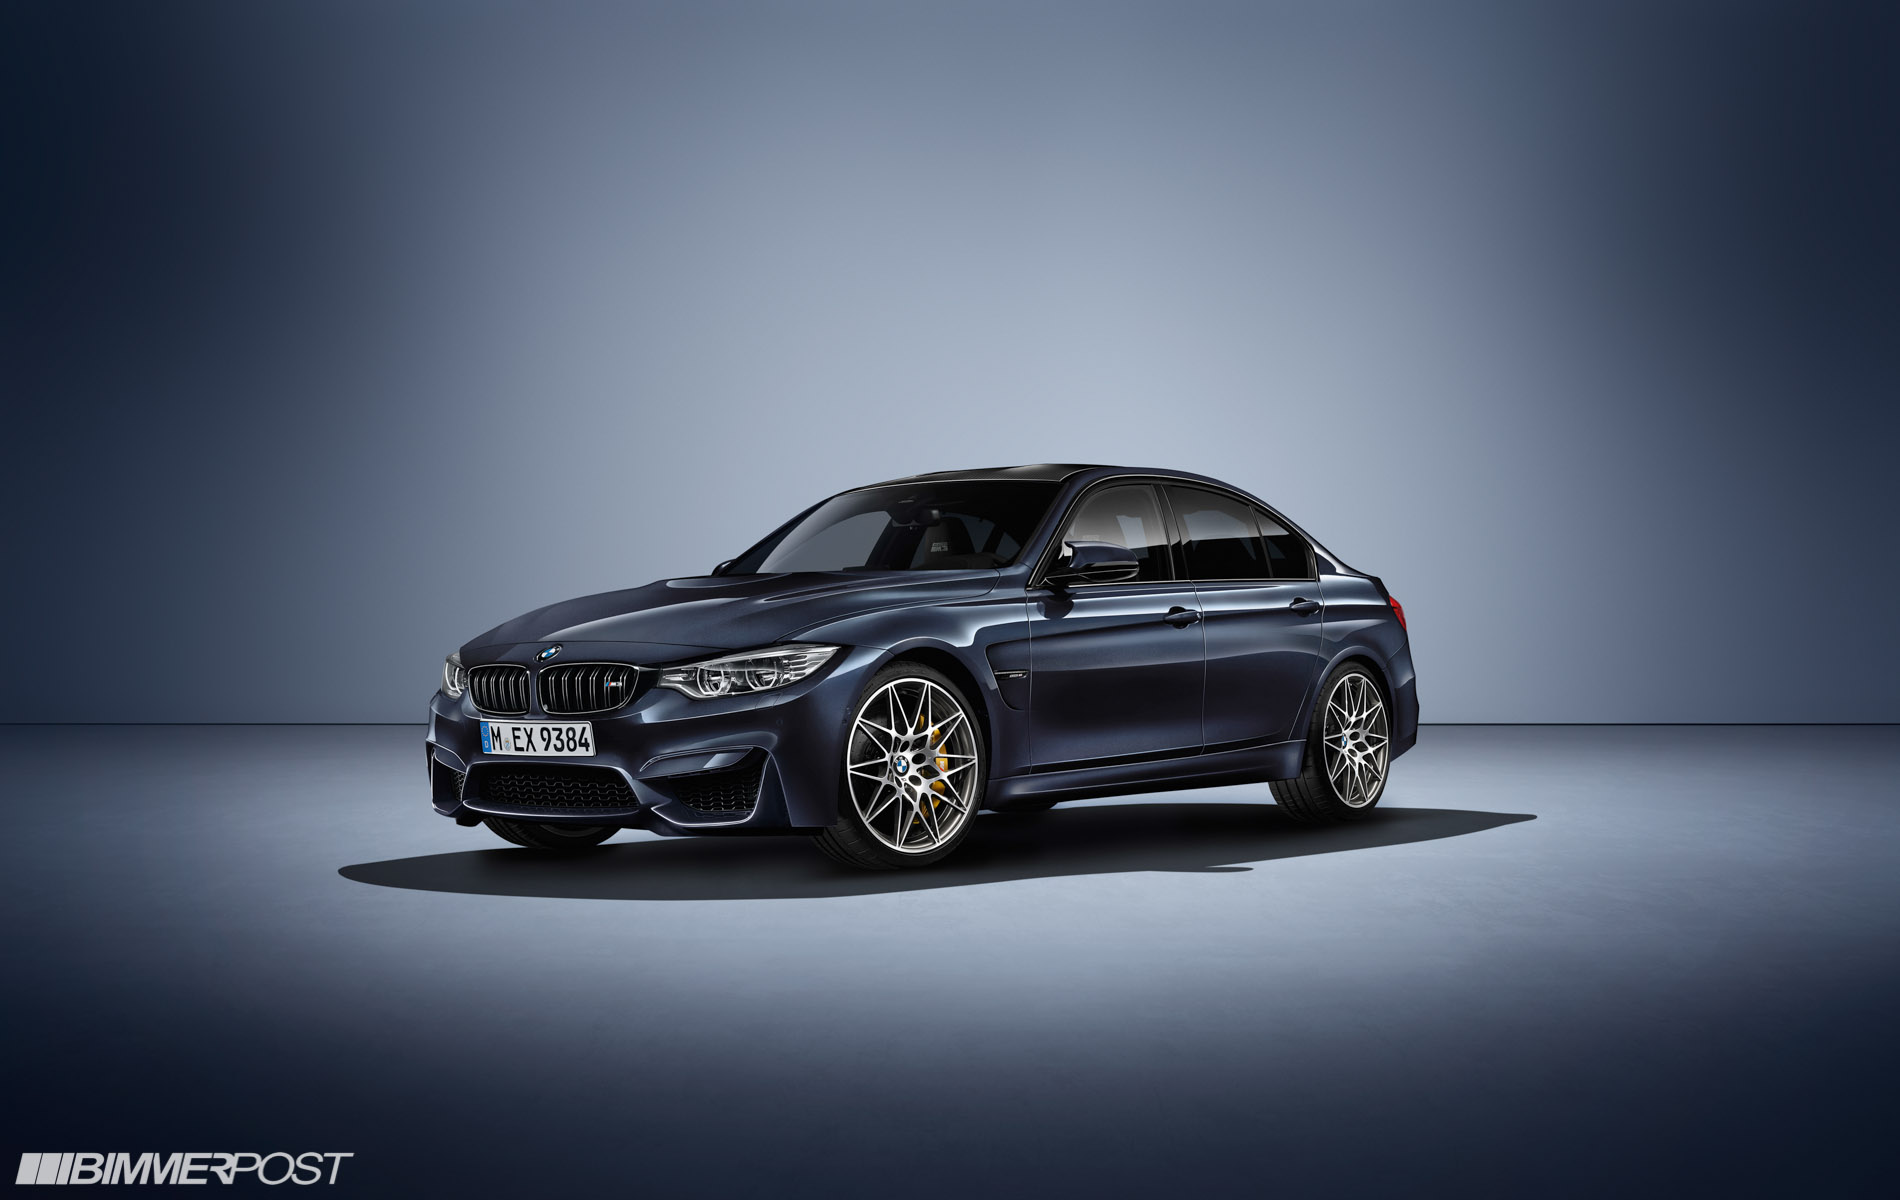 introducing the bmw m3 30 years m3 special edition starting at 83 250. Black Bedroom Furniture Sets. Home Design Ideas